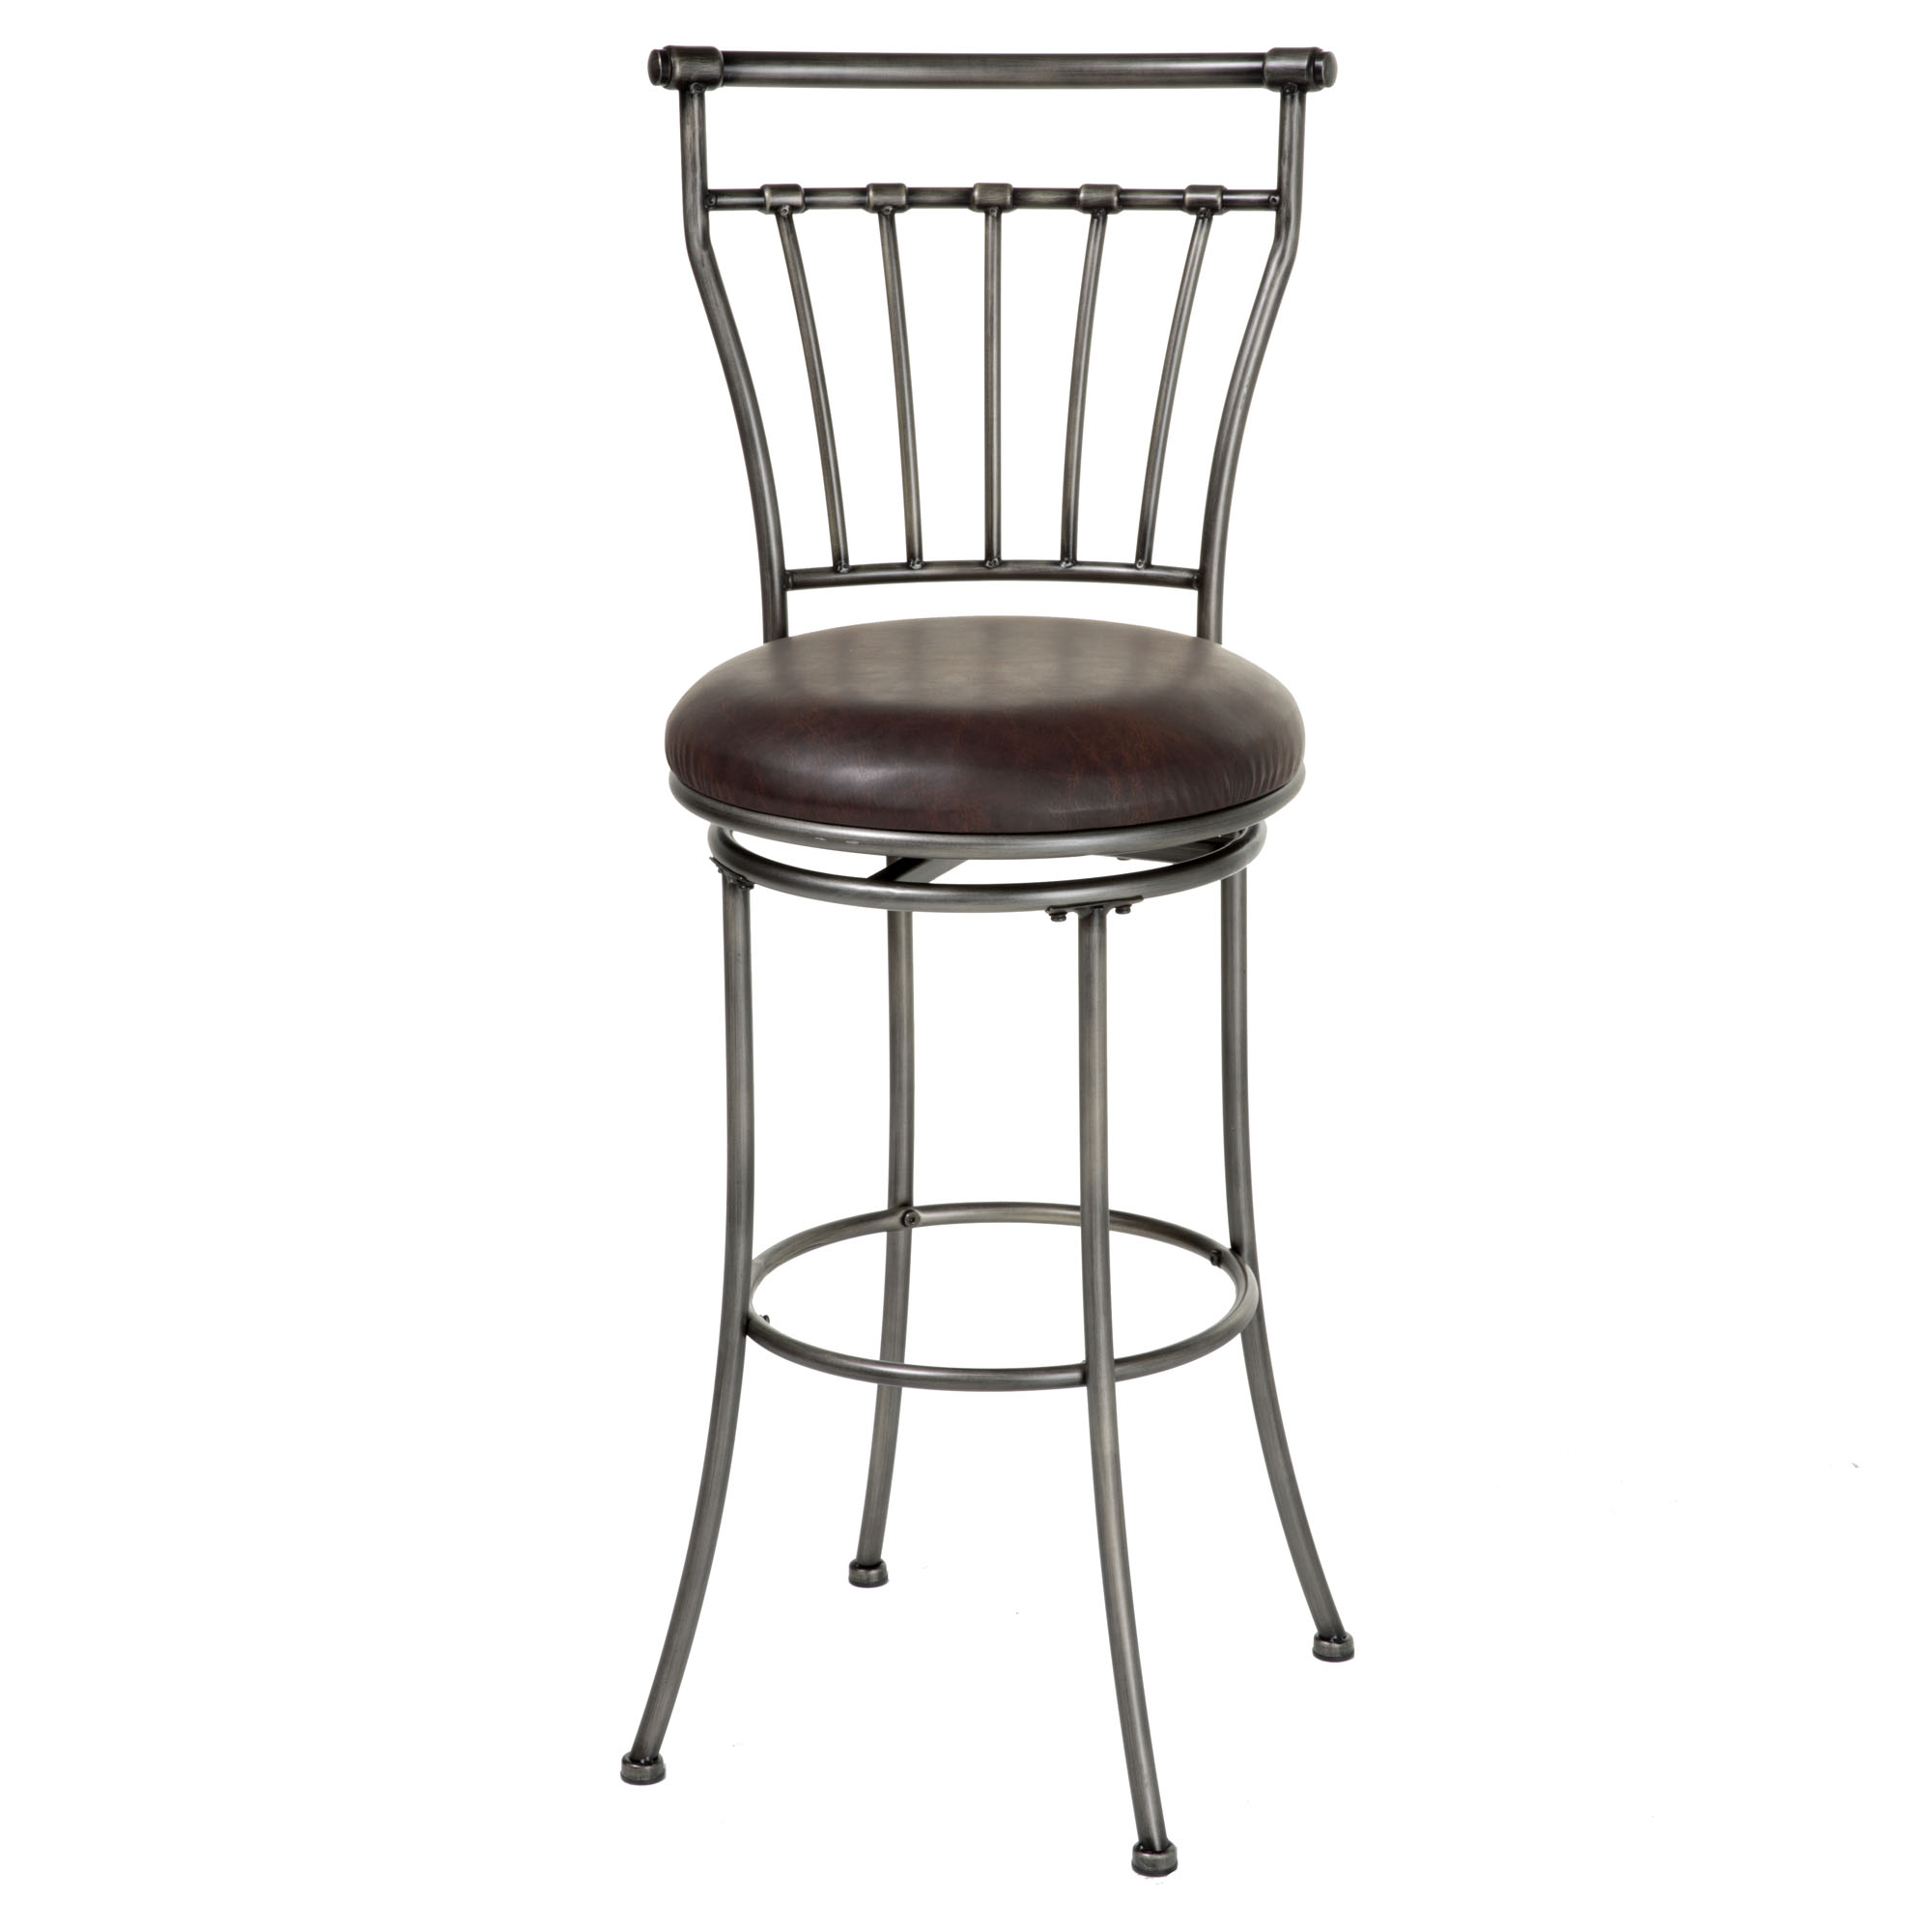 C1m026fashion Bed Group Topeka Swivel Seat Counter Stool With